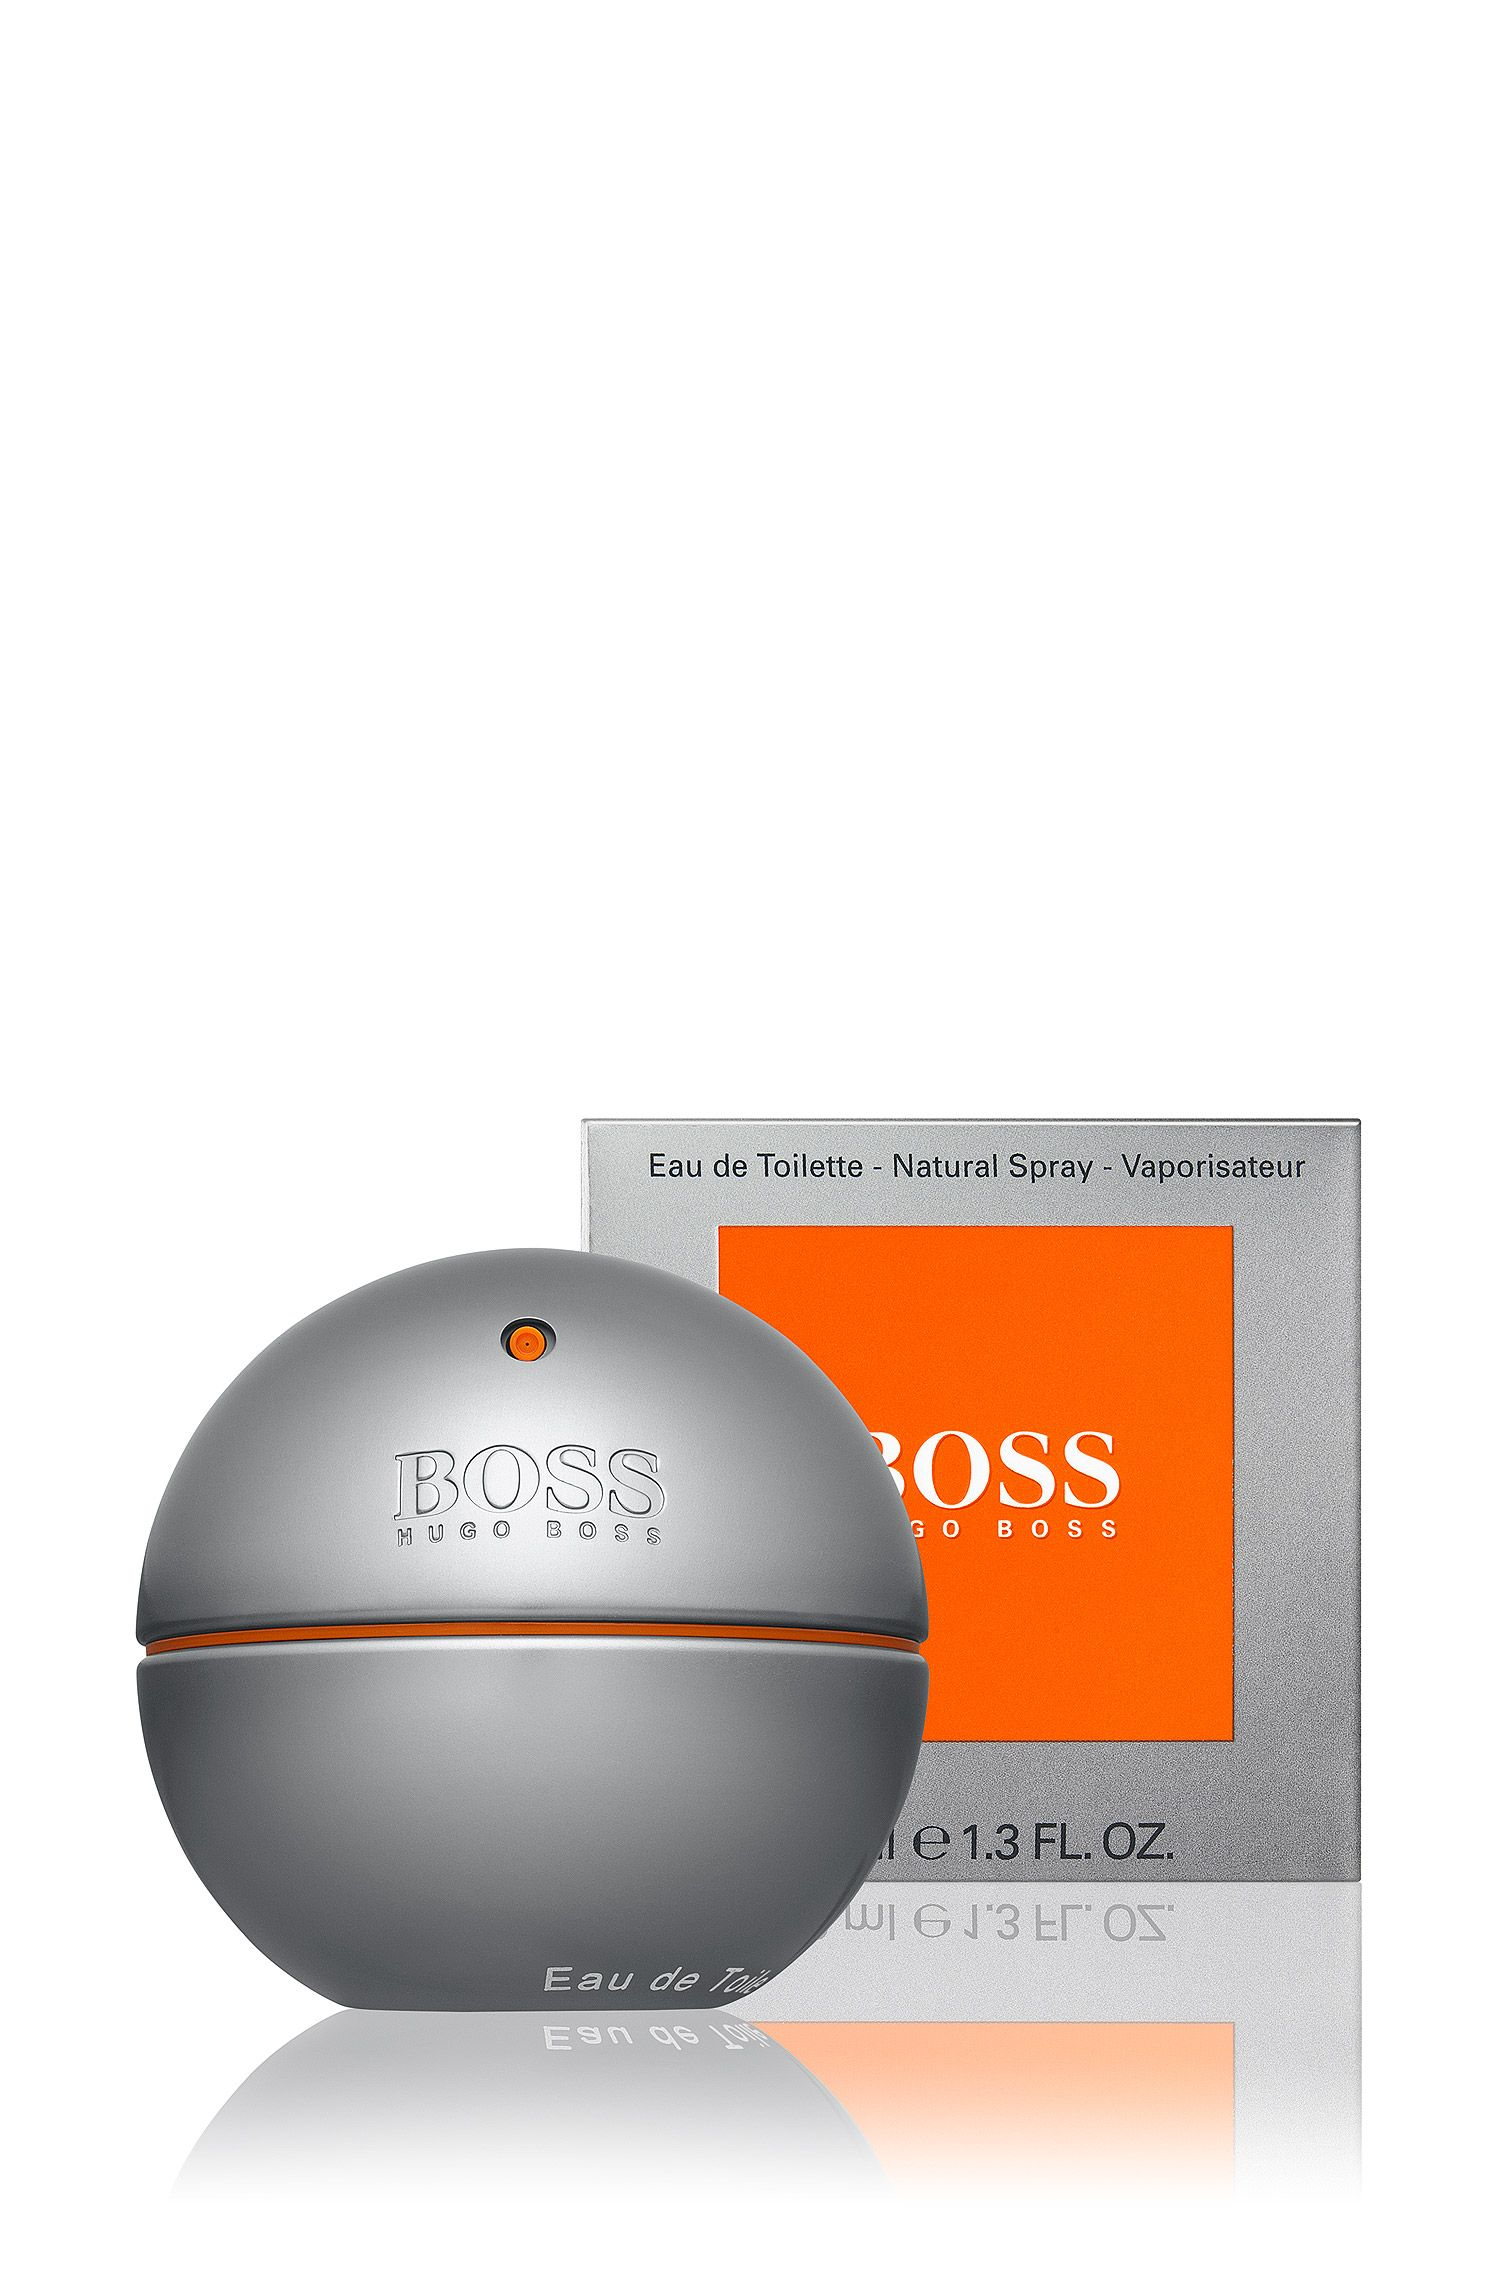 Eau de Toilette BOSS in Motion 40 ml